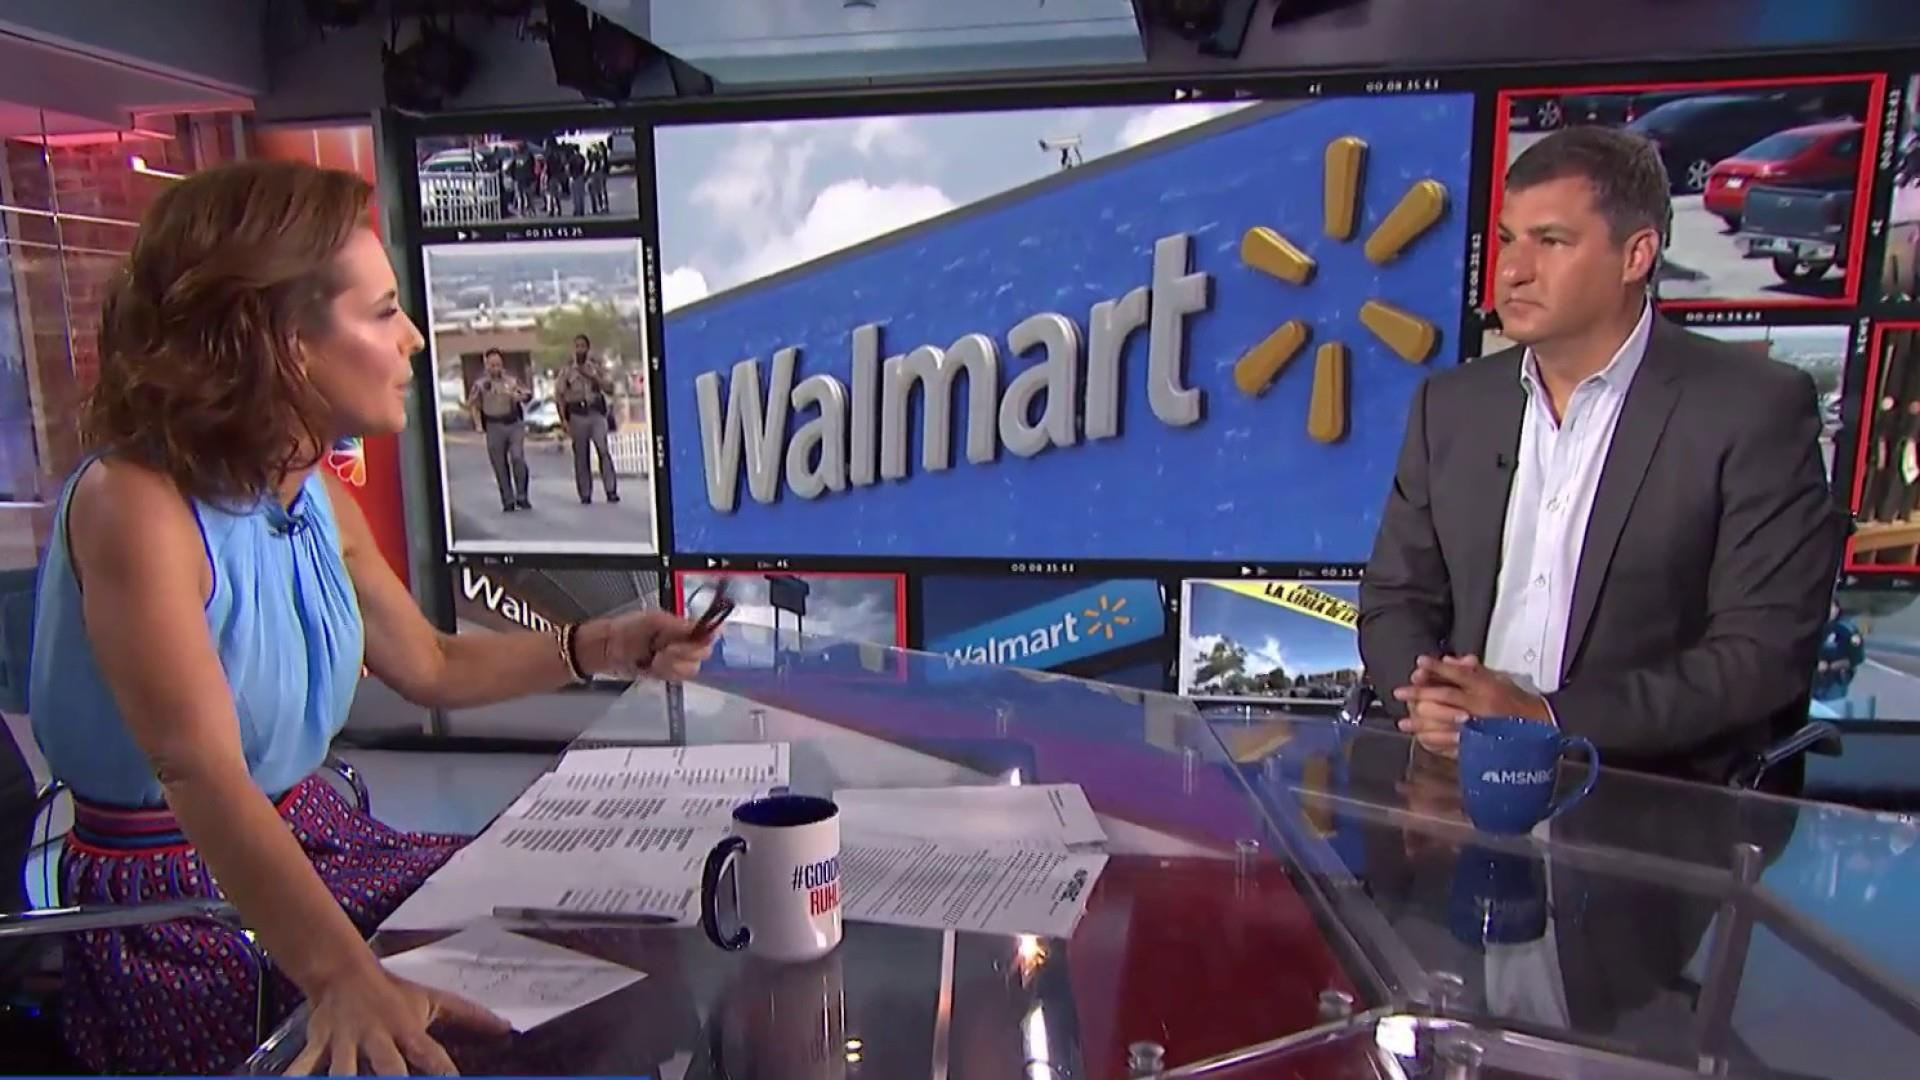 NYT columnist asks Walmart CEO to use his clout to curb gun violence